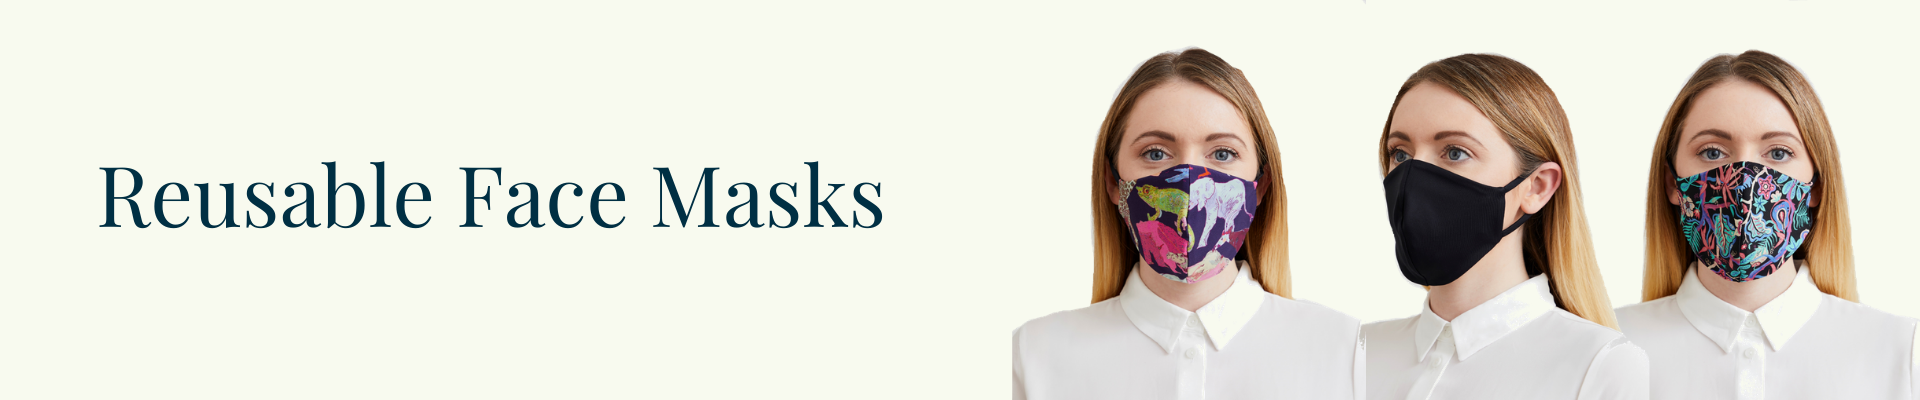 Limited Edition Reusable Liberty Print Face Masks